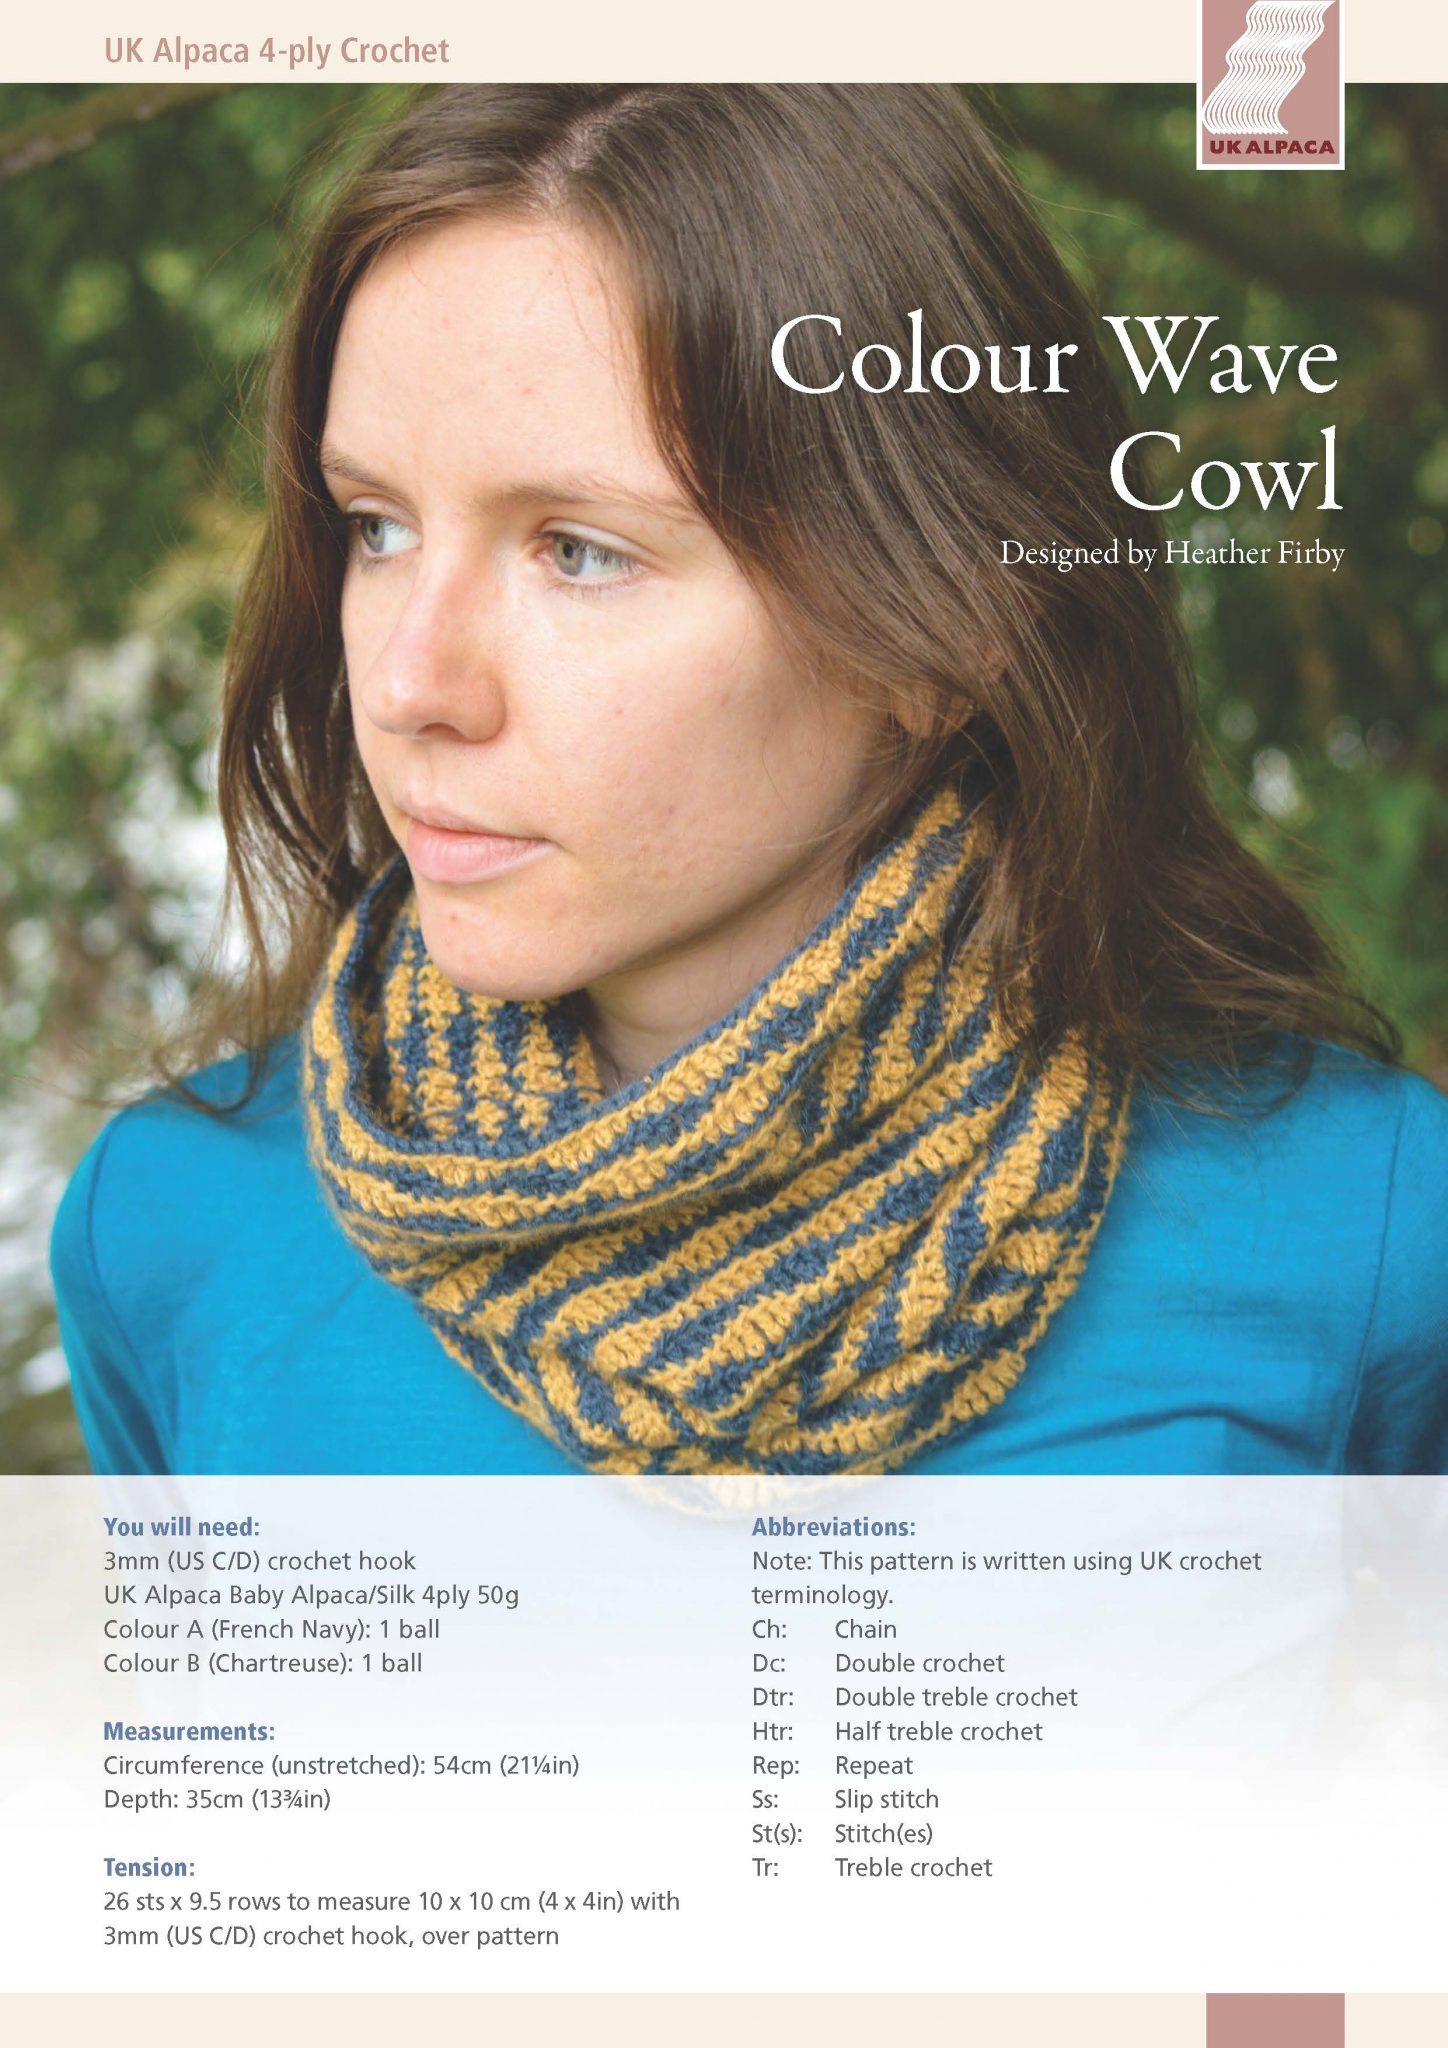 b1fde5026 Colour Wave Cowl by Heather Firby